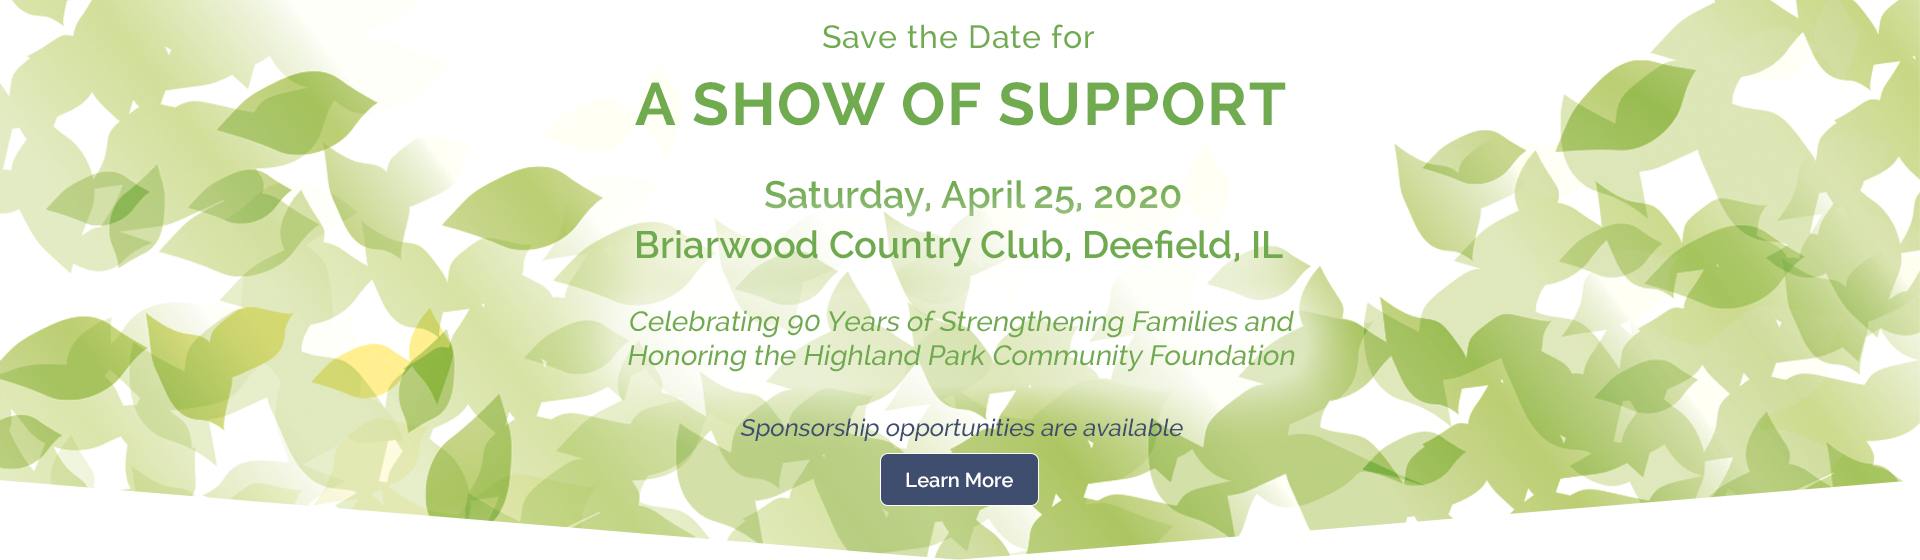 A Show of Support - save the date!